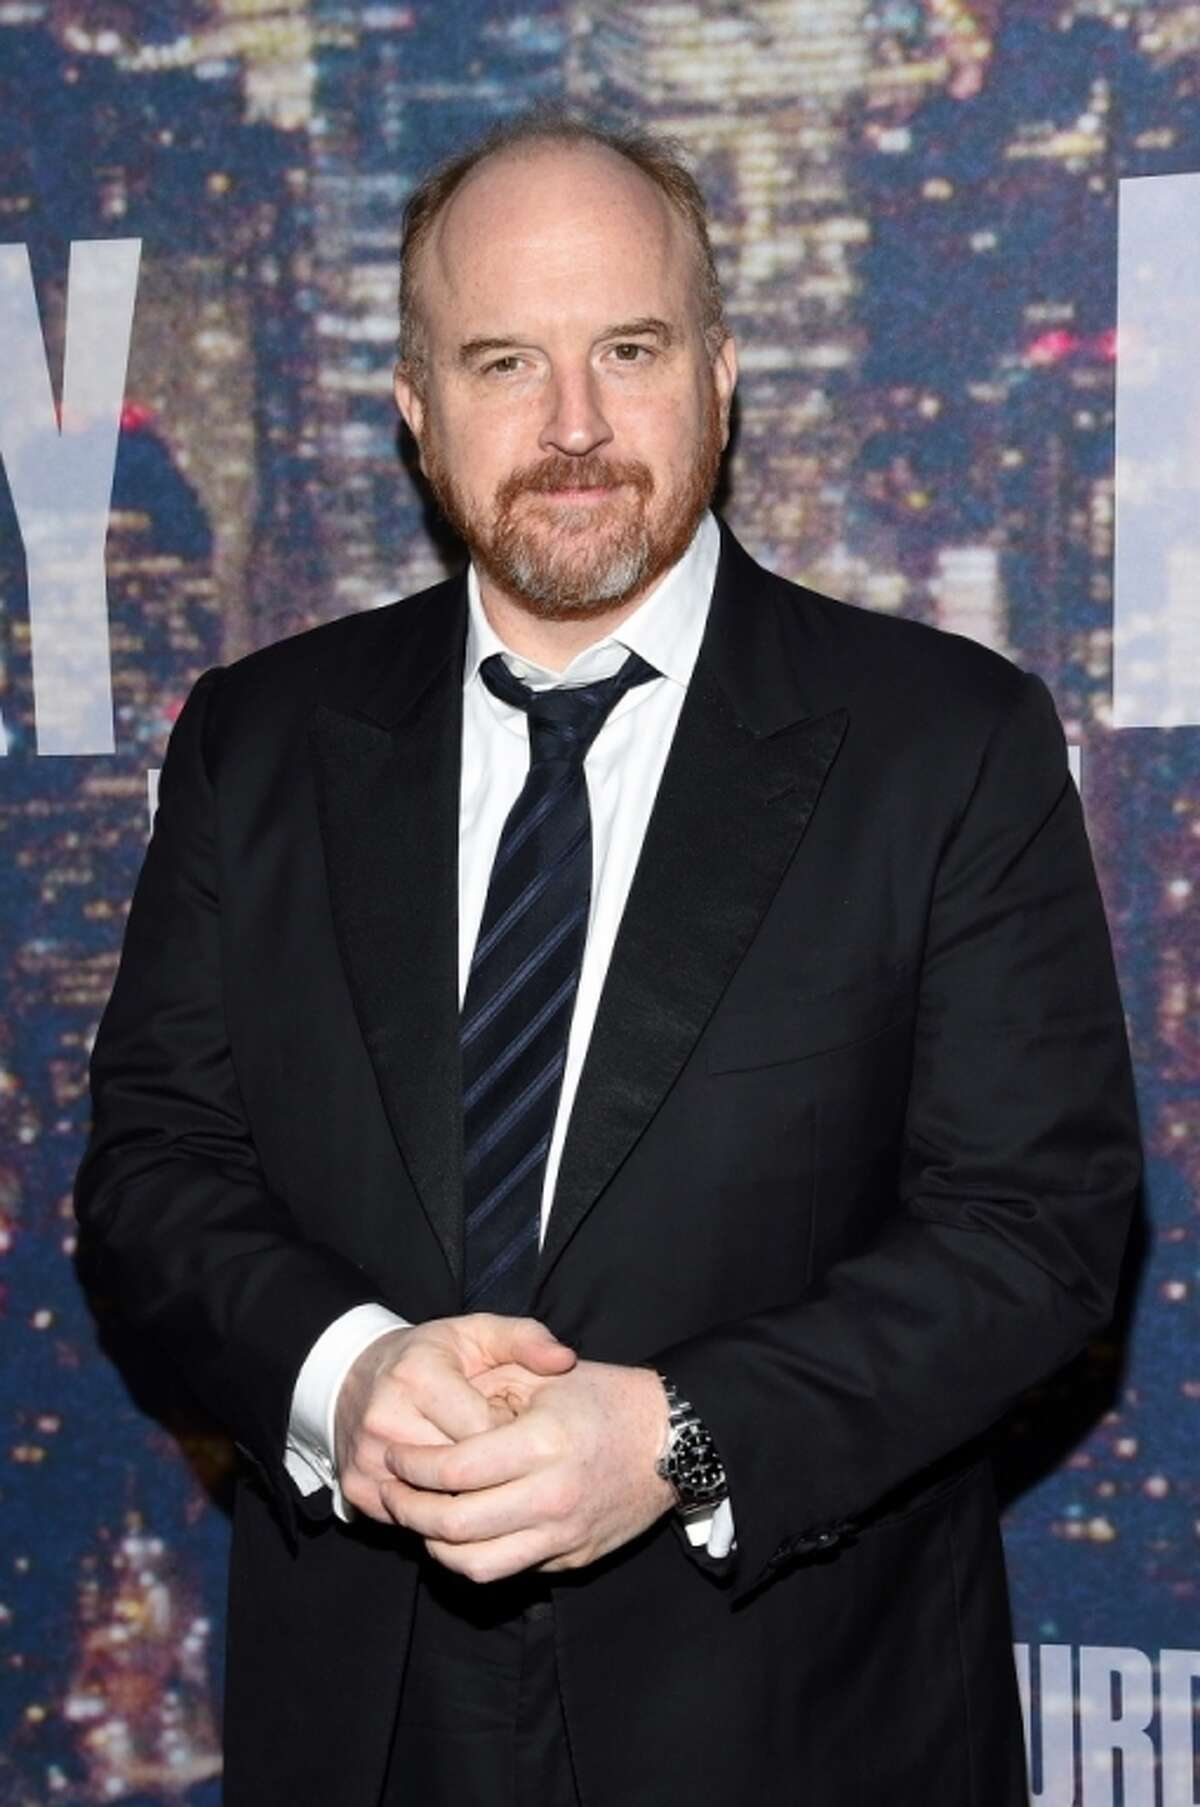 Louis C.K. is heading to the Bayou City on July 12. But he's not the only star serving up the laughs. KEEP CLICKING TO SEE WHICH OTHER COMEDIANS ARE PERFORMING IN HOUSTON THIS YEAR.